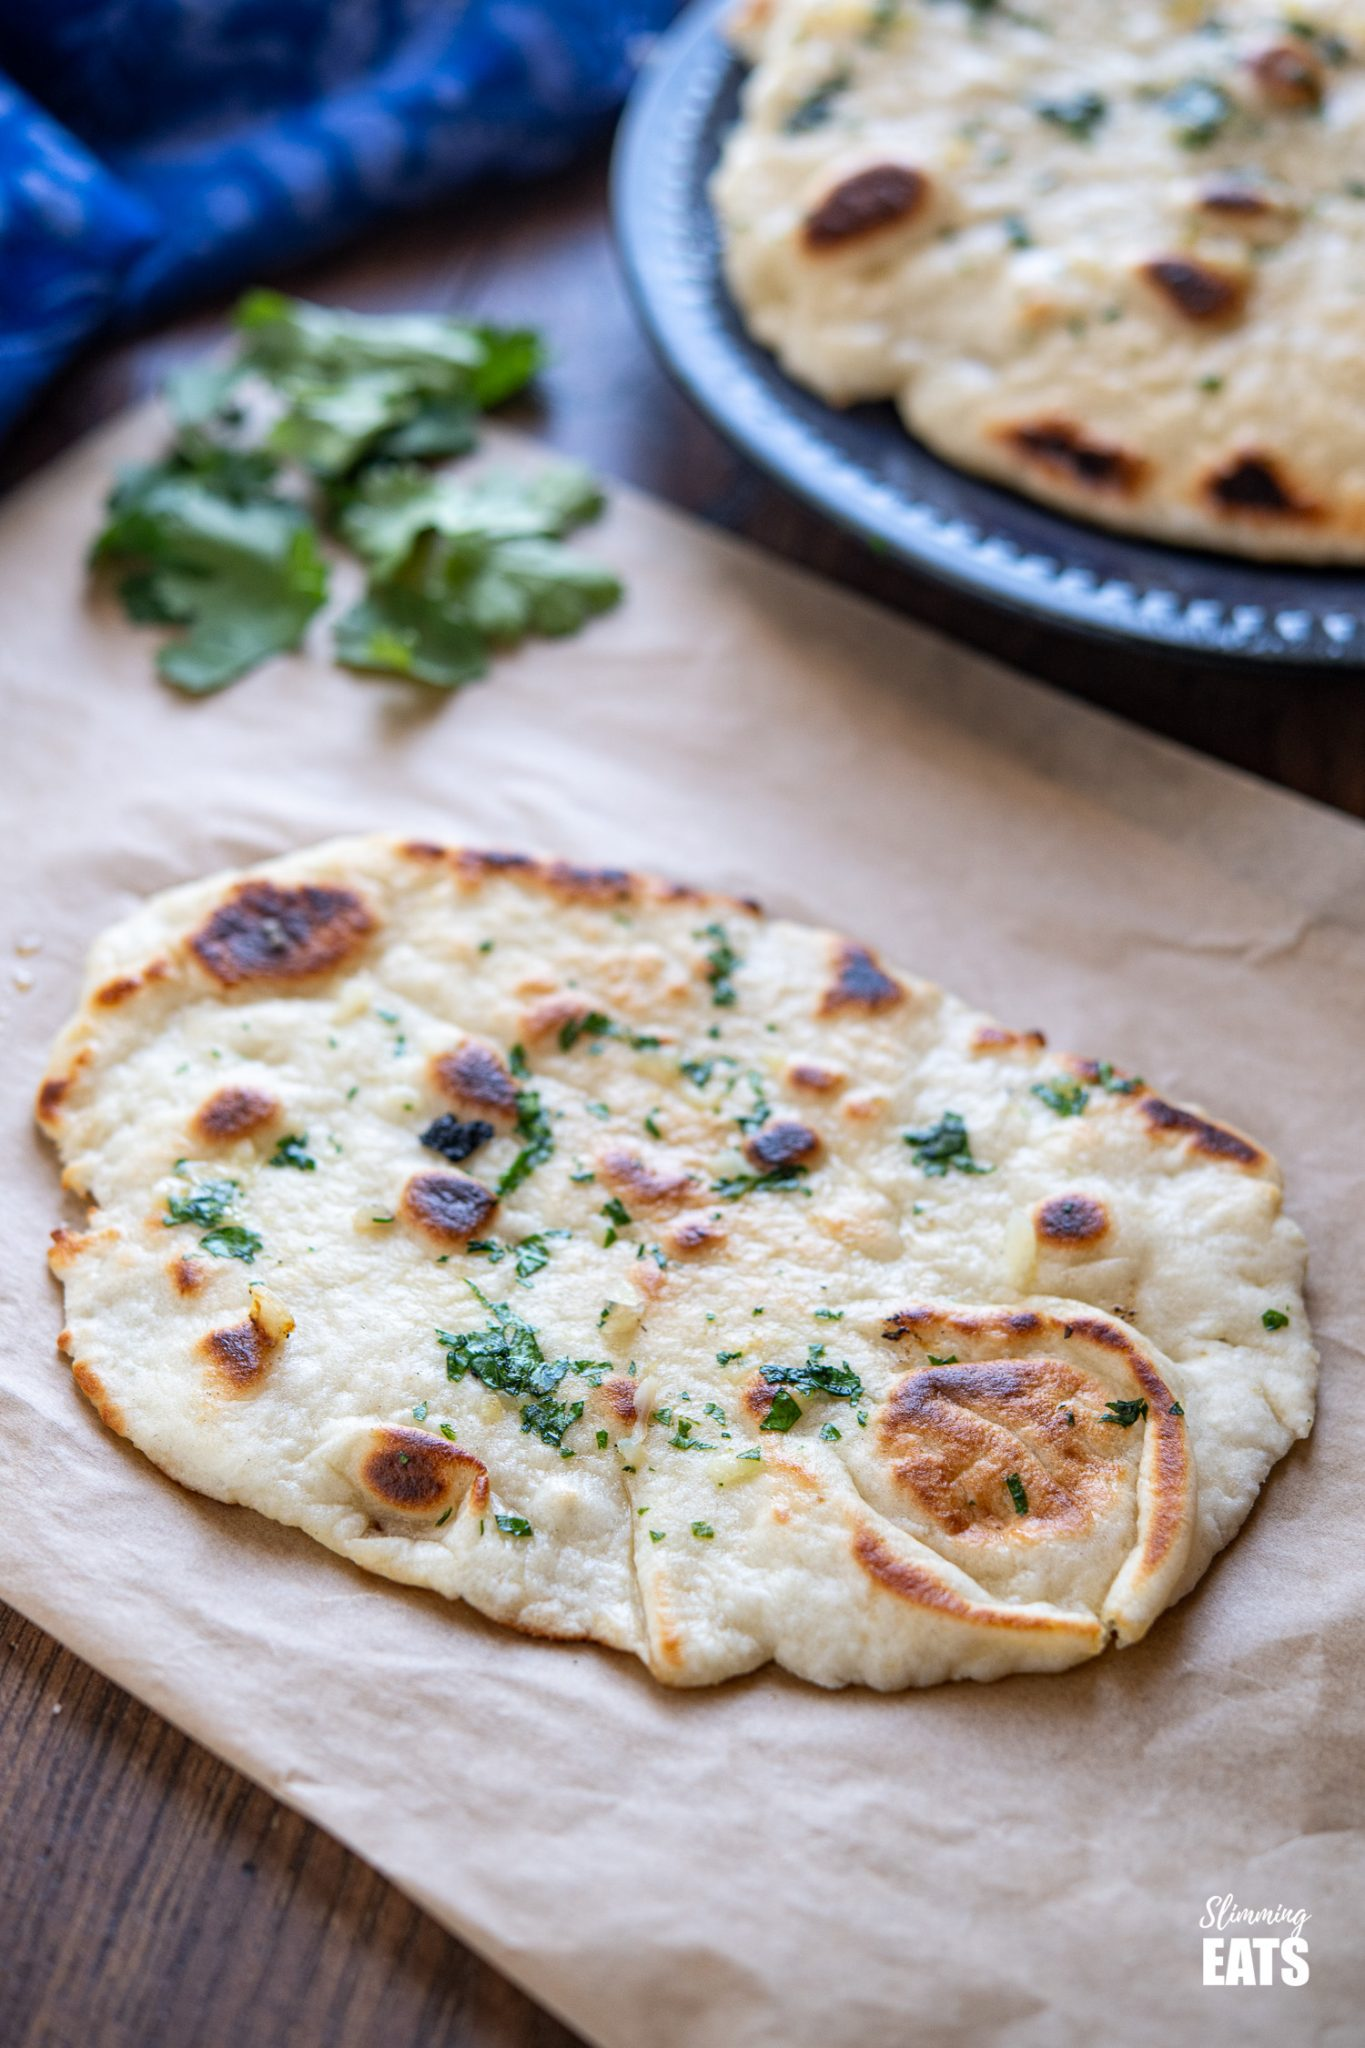 Garlic Greek Yoghurt Naan Bread on a sheet or parchment paper with scattered cilantro